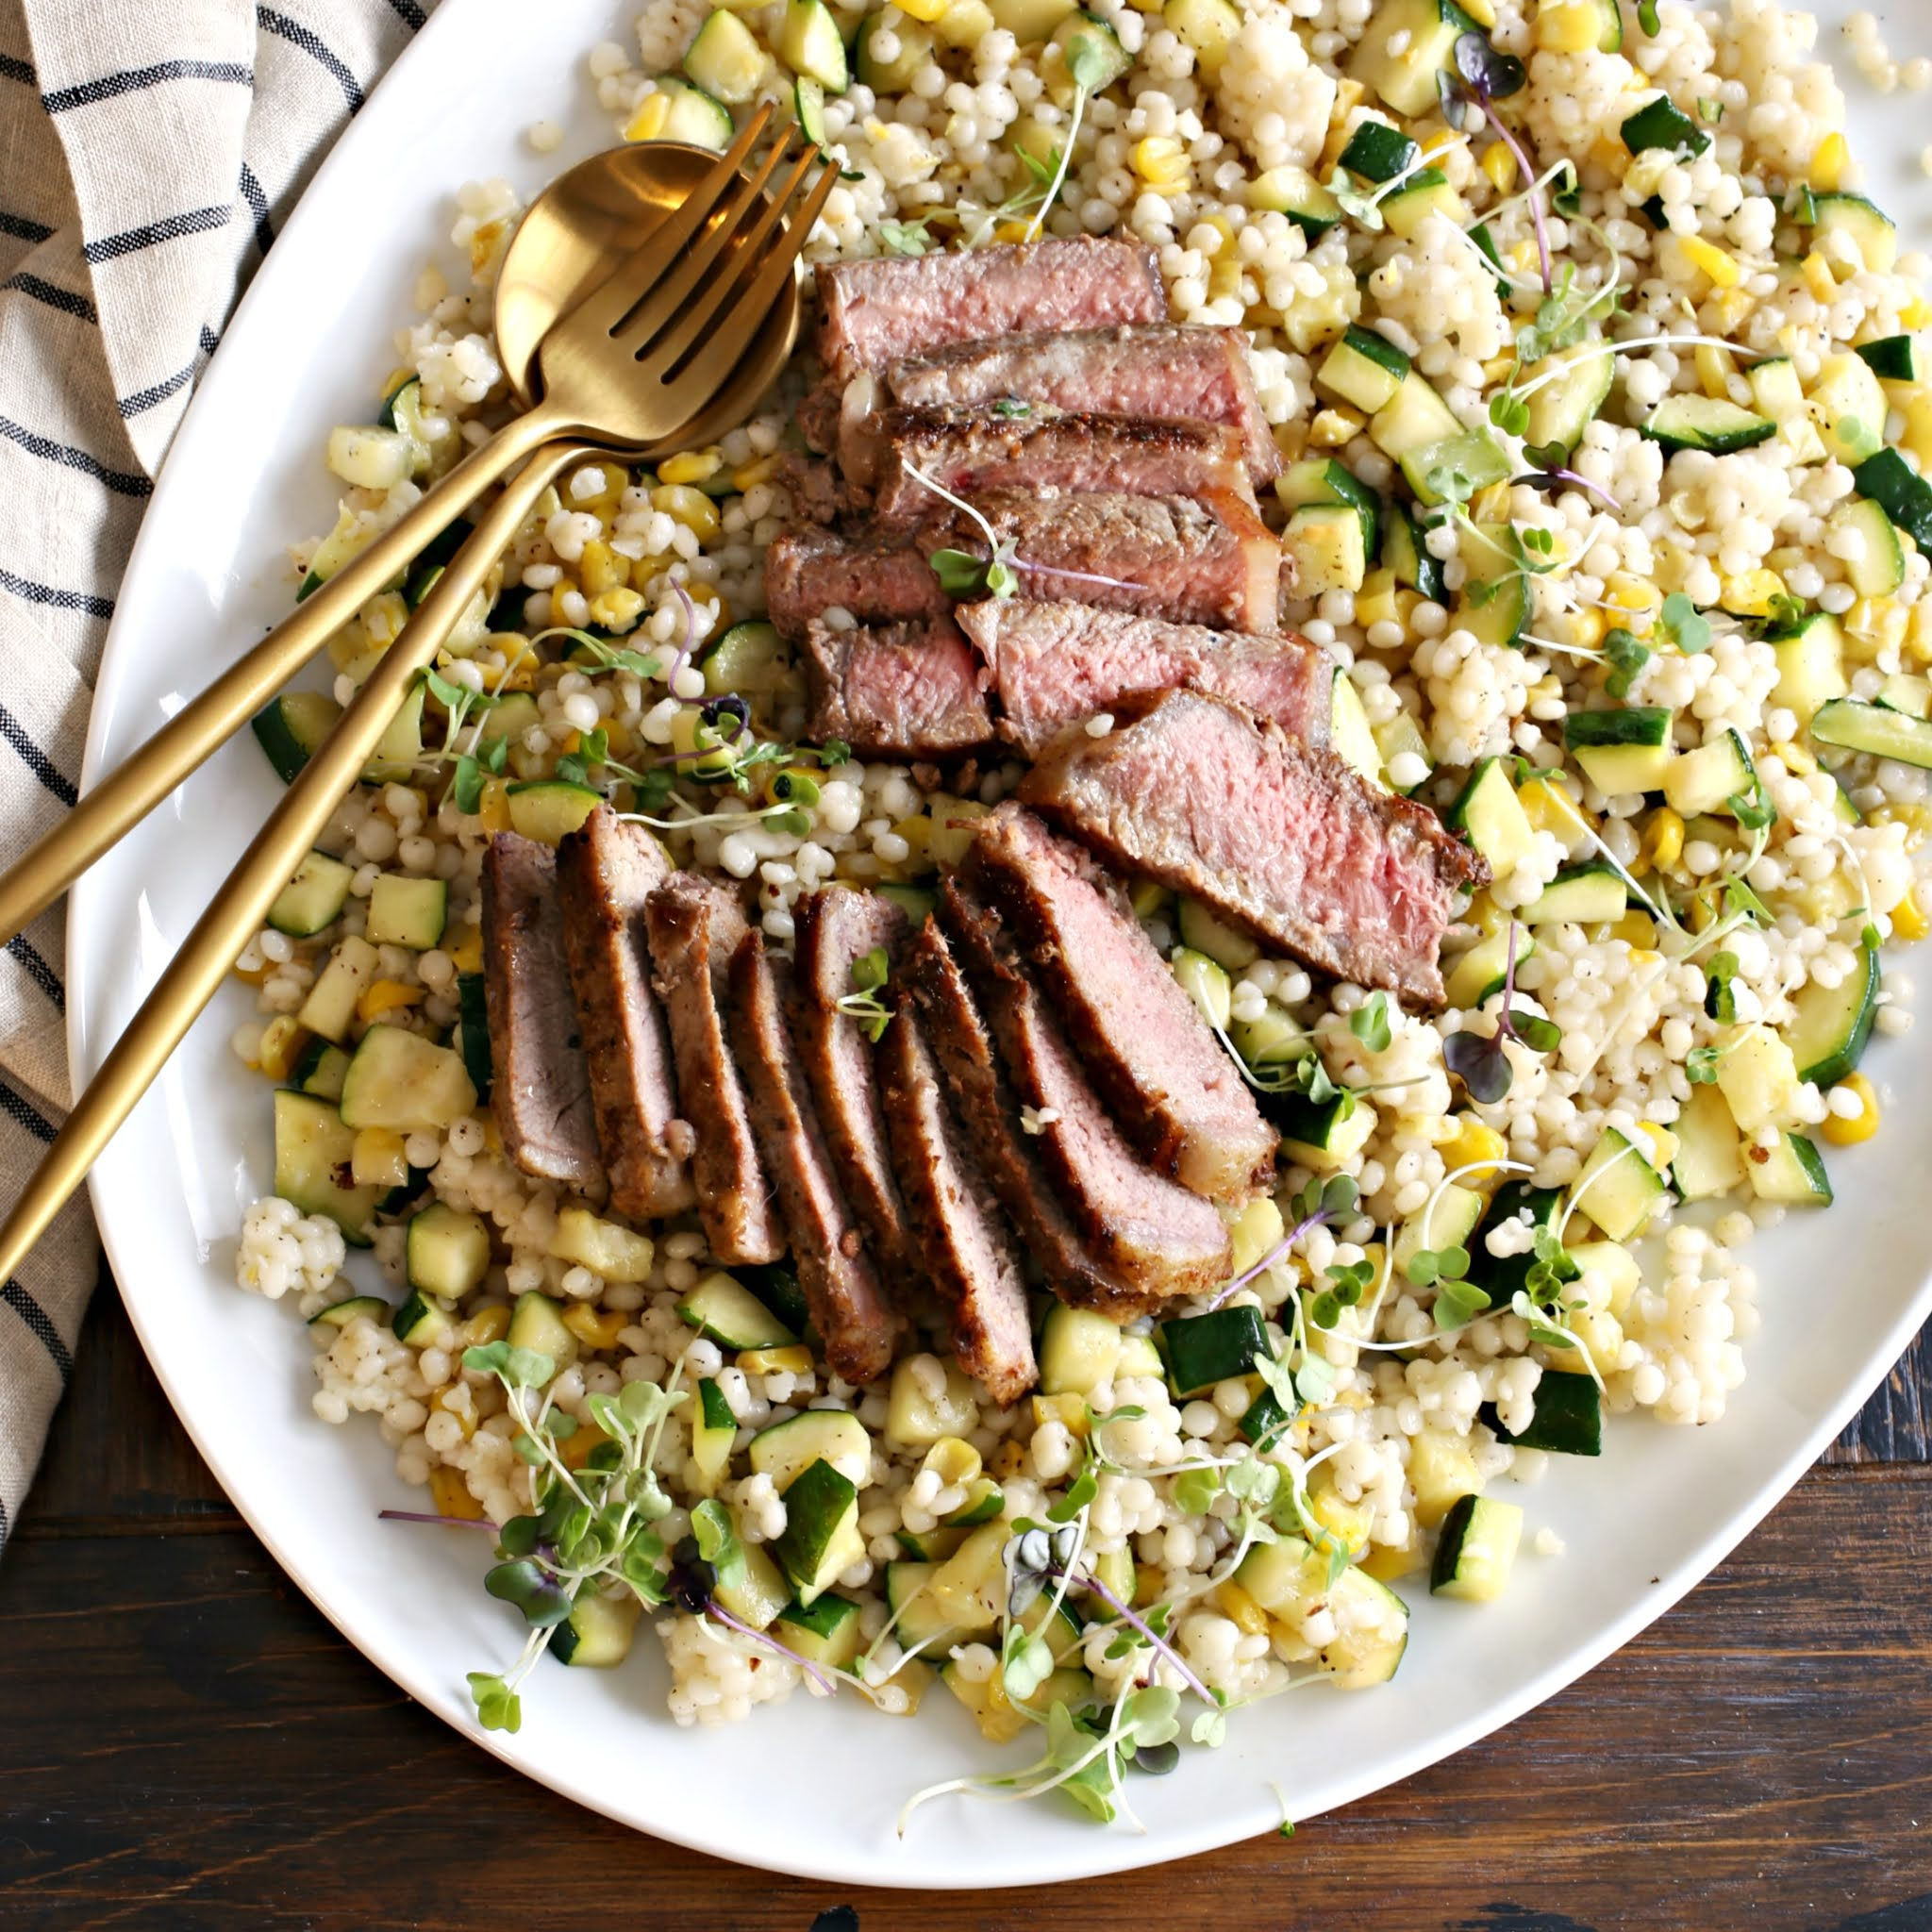 Recipe for sliced strip steaks on a bed of couscous, corn and zucchini salad.